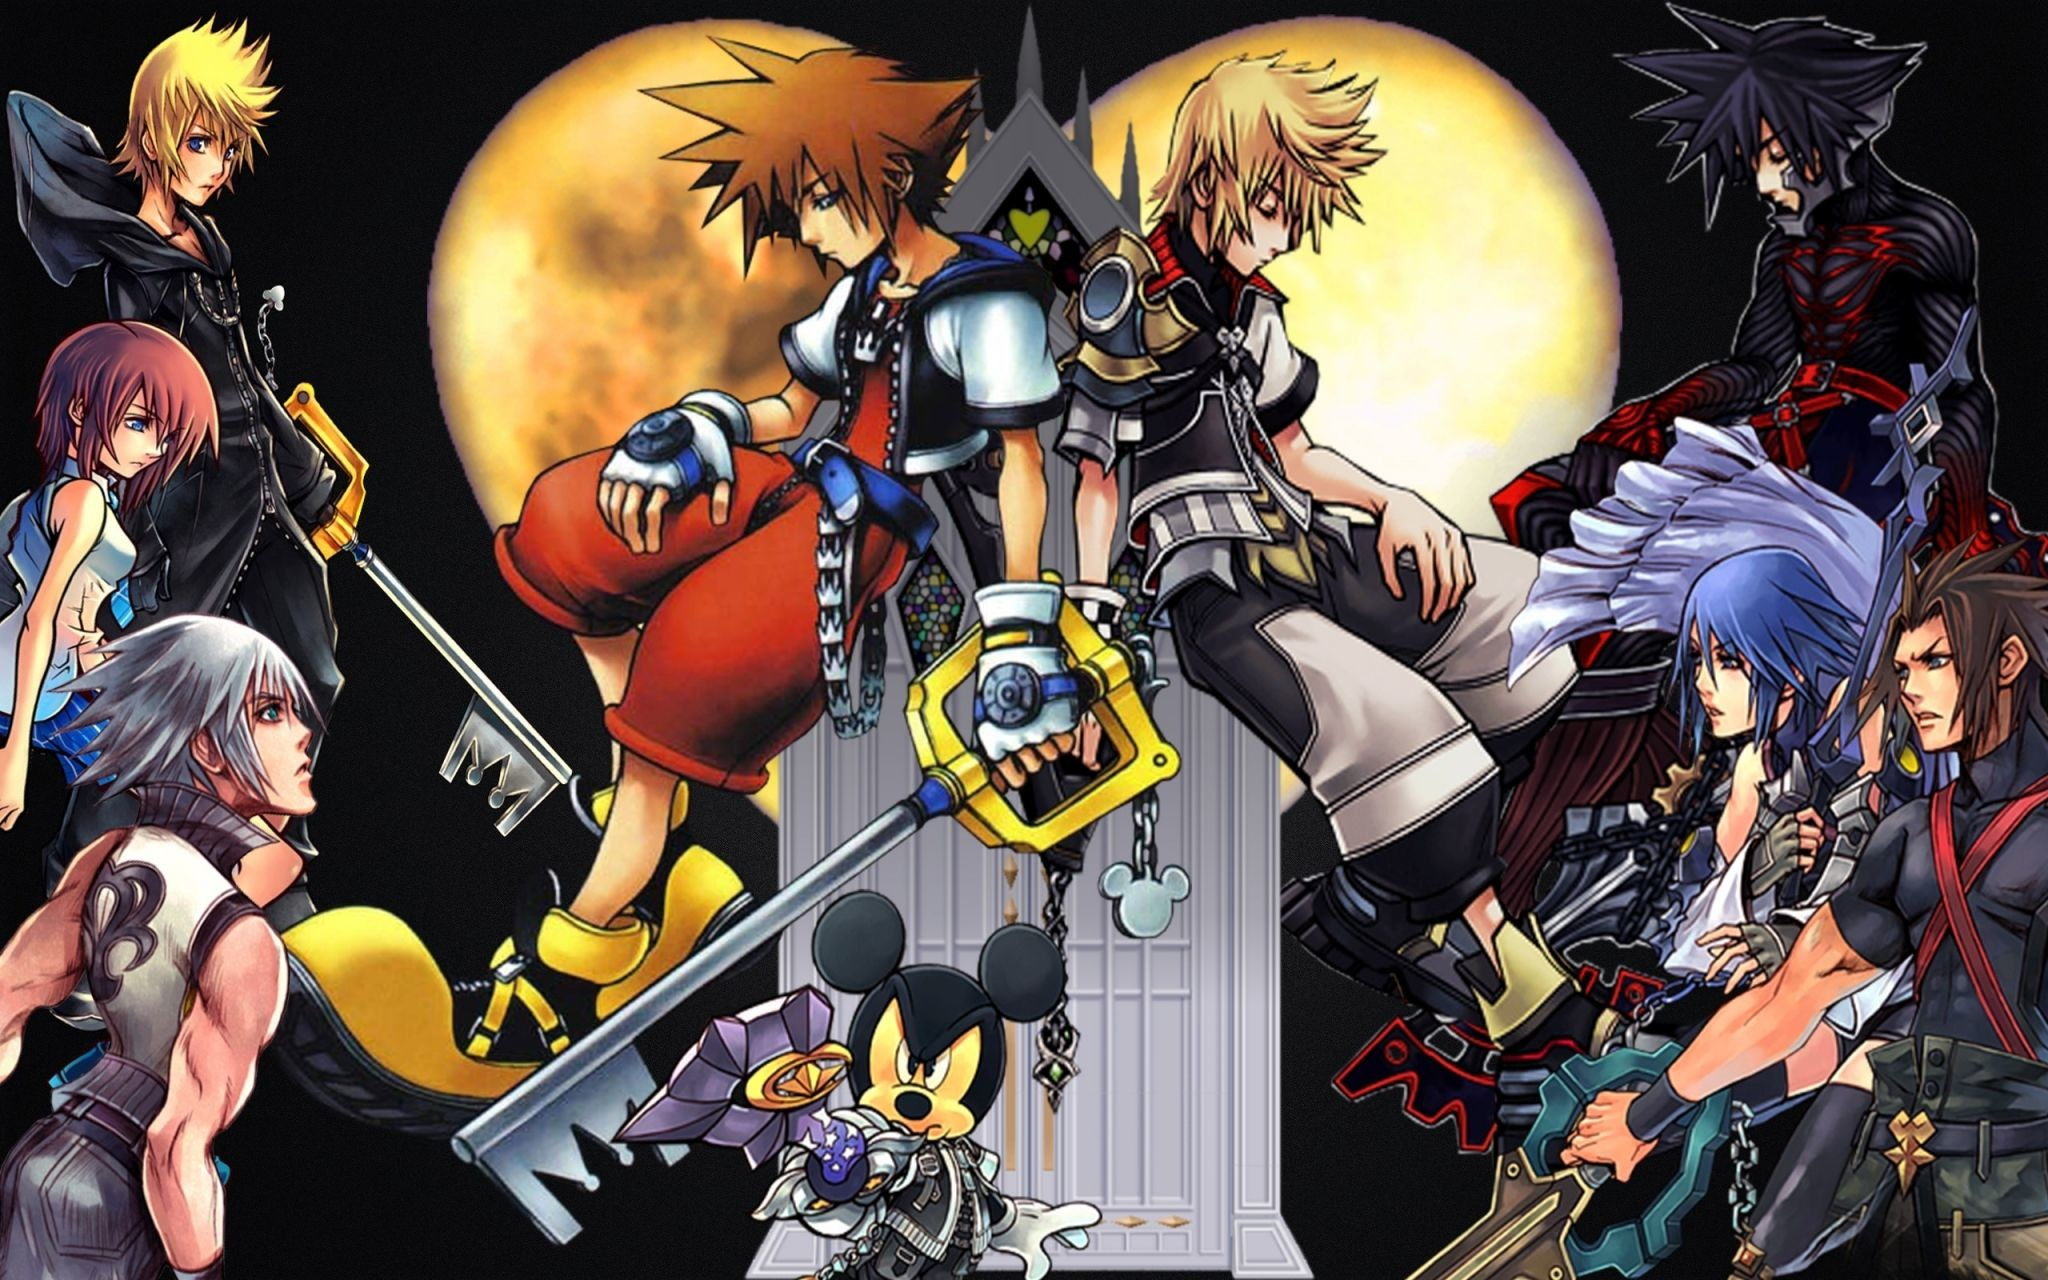 2048x1280 Kingdom hearts wallpapers for desktop - Kingdom Hearts Wallpaper Desktop  Backgrounds Download